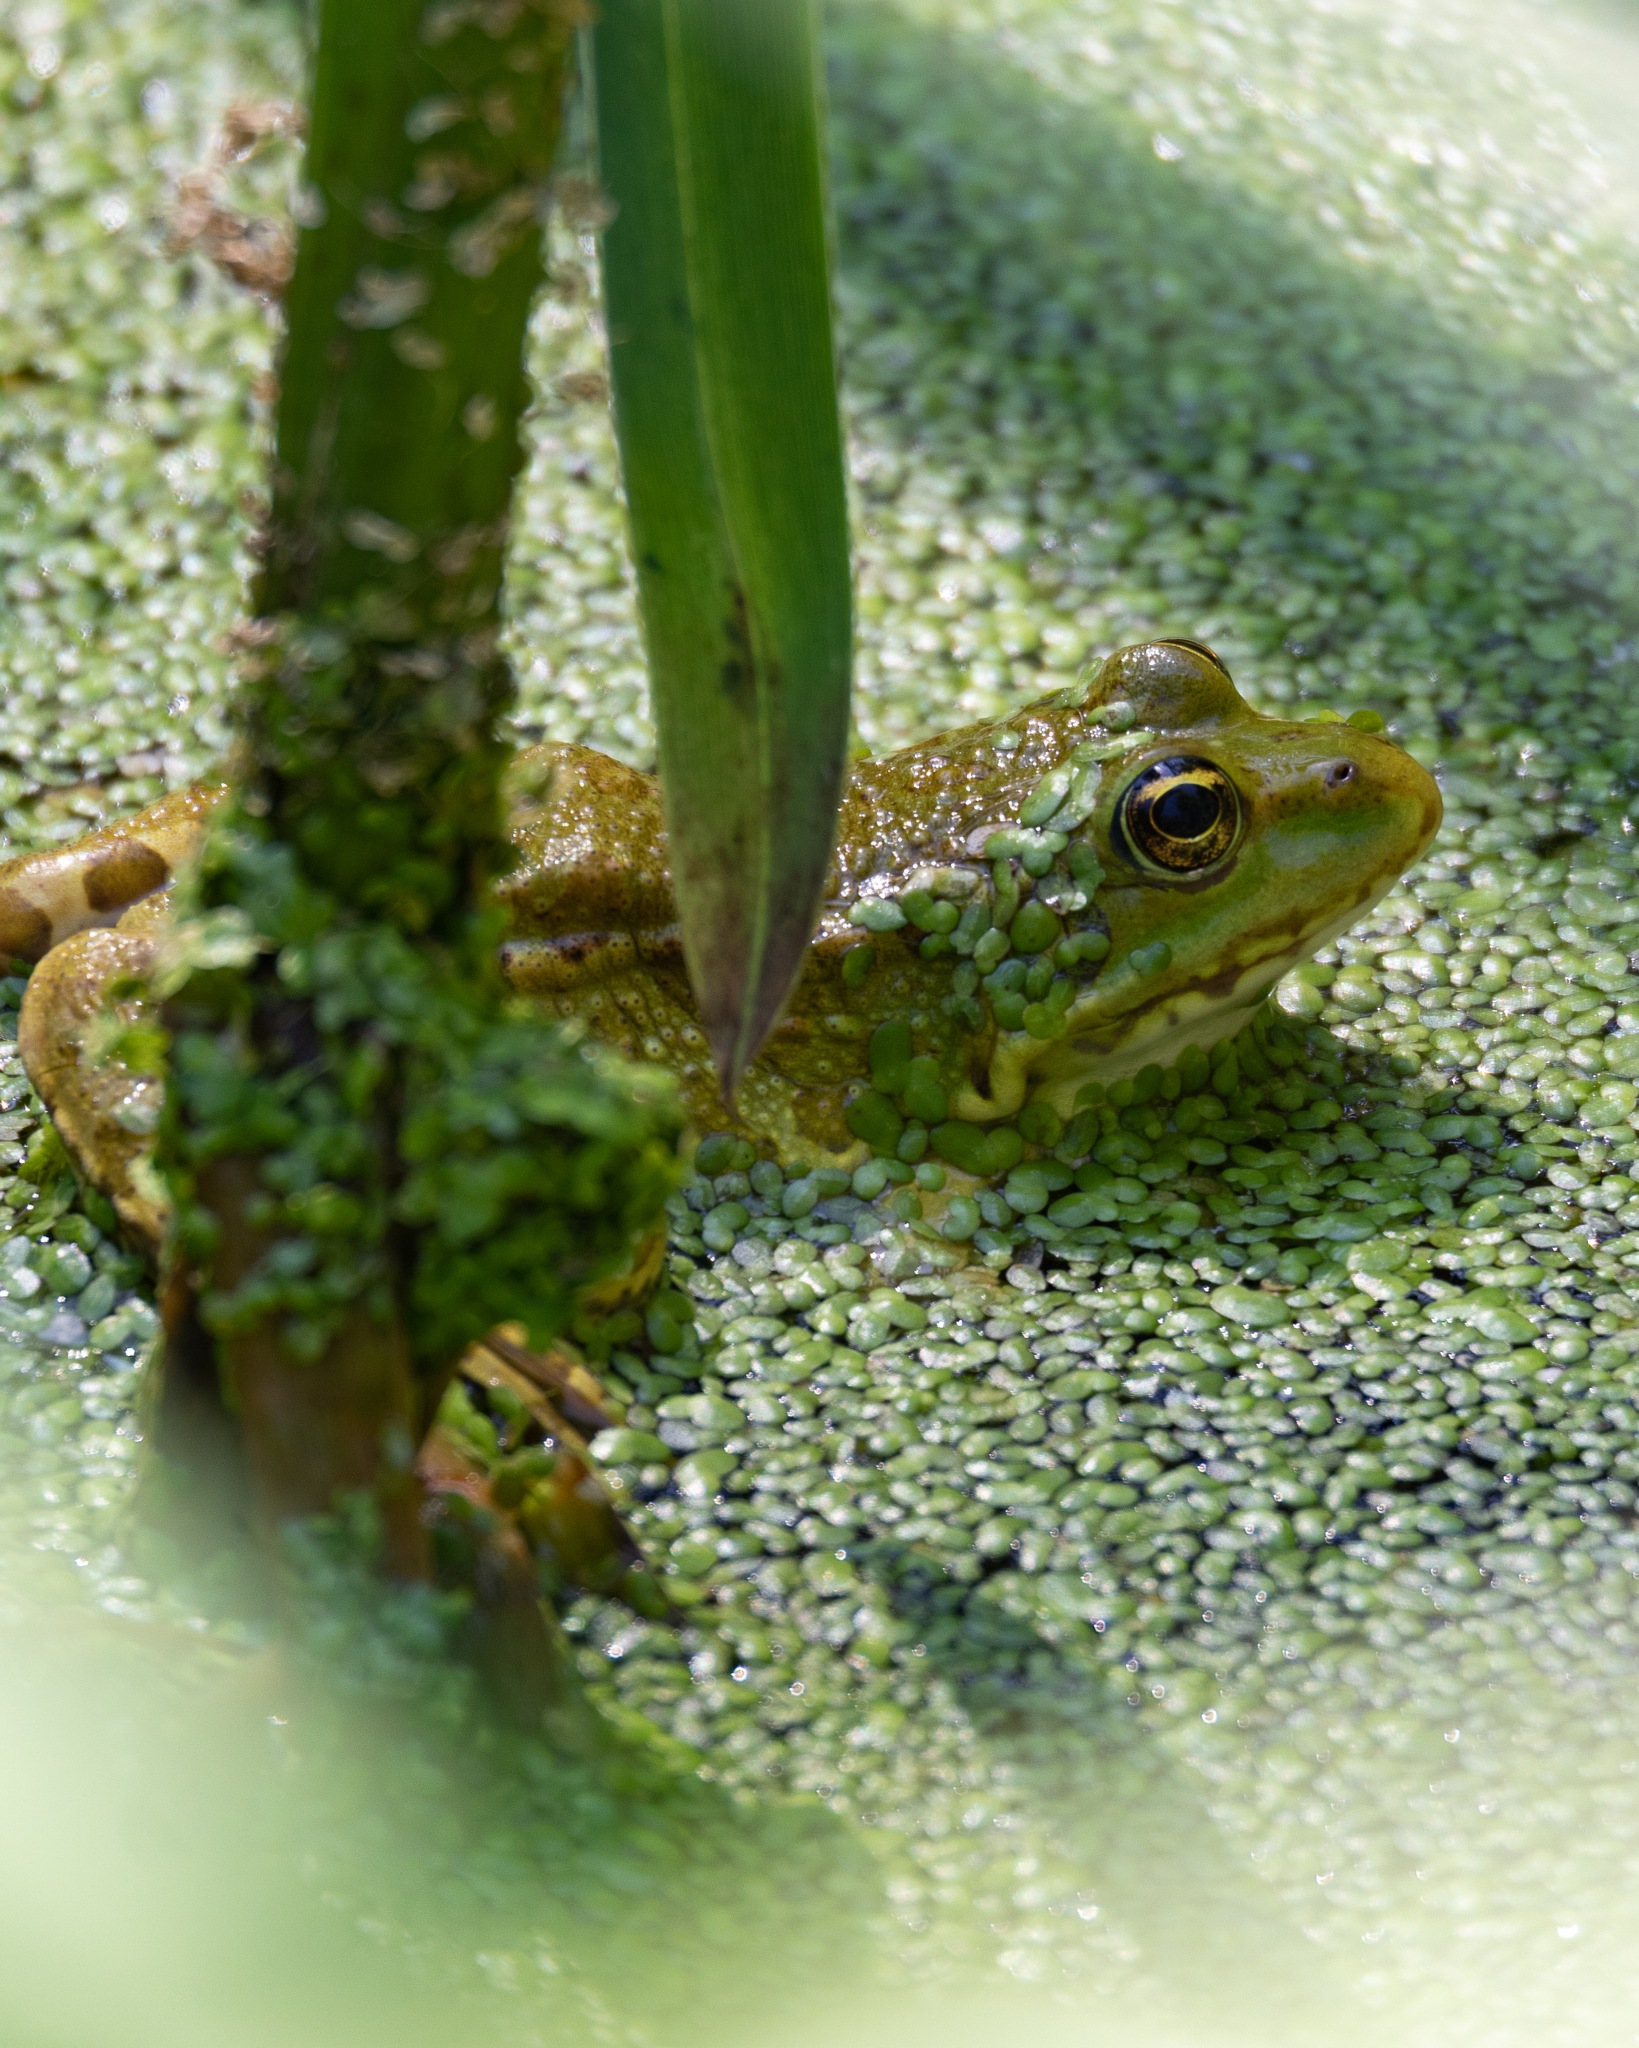 Frog by Thierry Royls